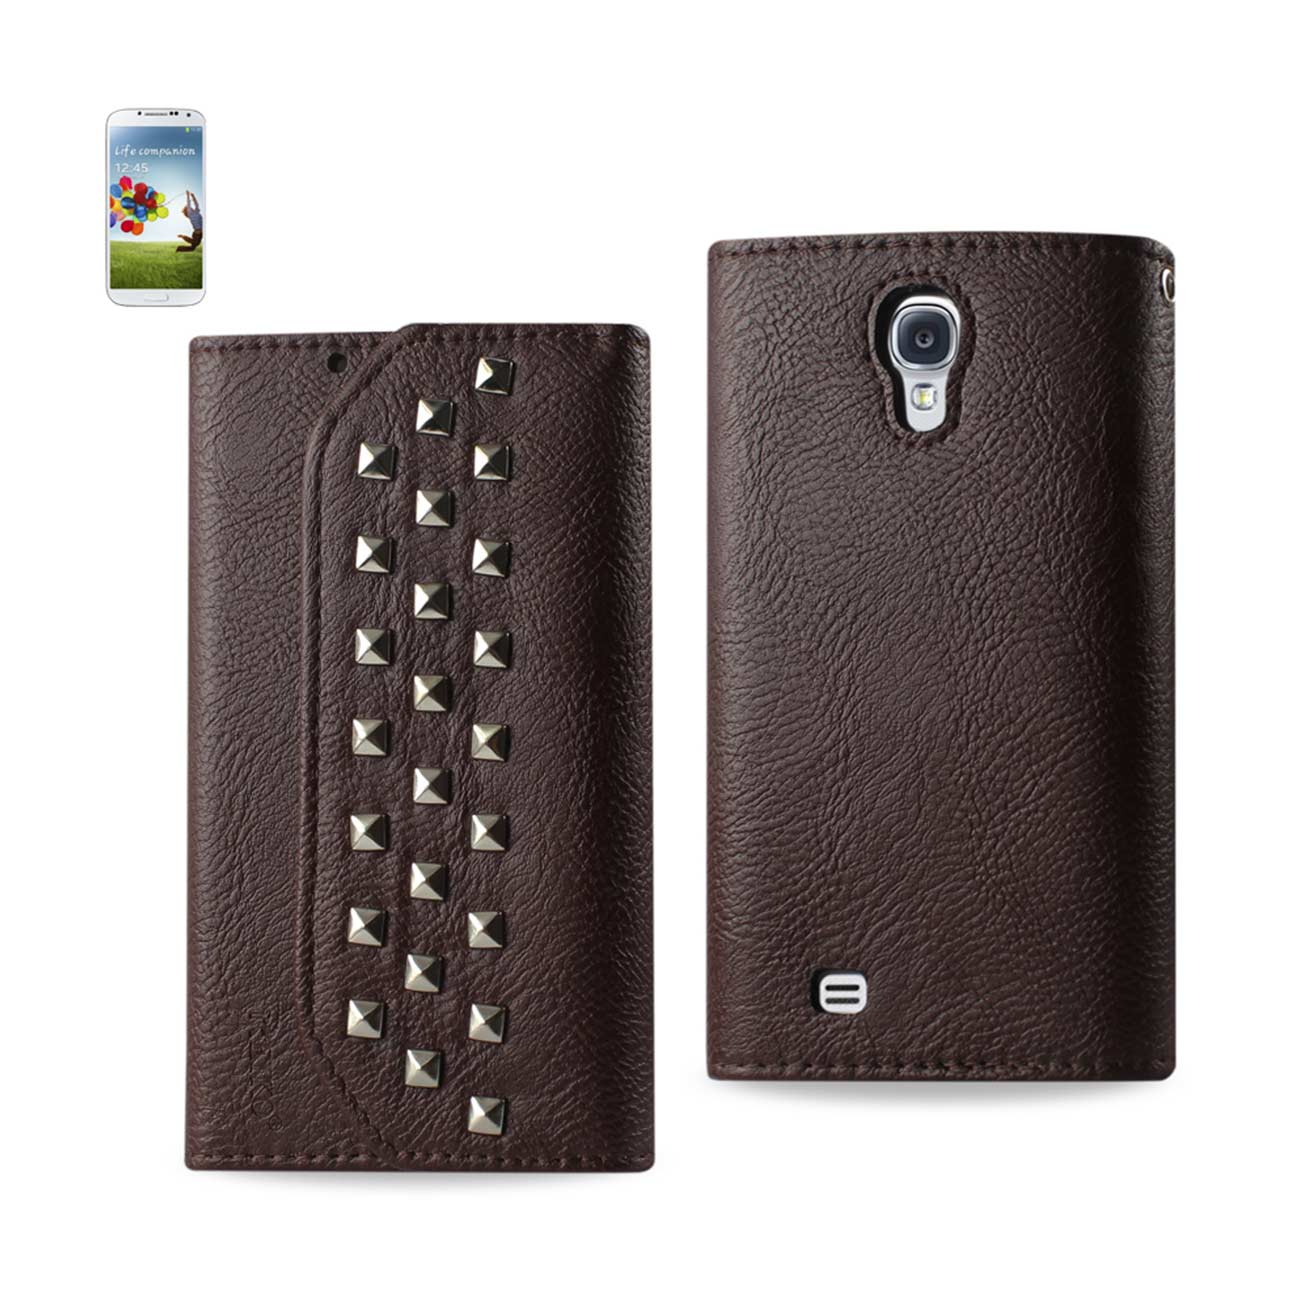 SAMSUNG GALAXY S4 STUDS WALLET Leather Folio Pouch Flip Case Cover Stand WITH CARD HOLDER